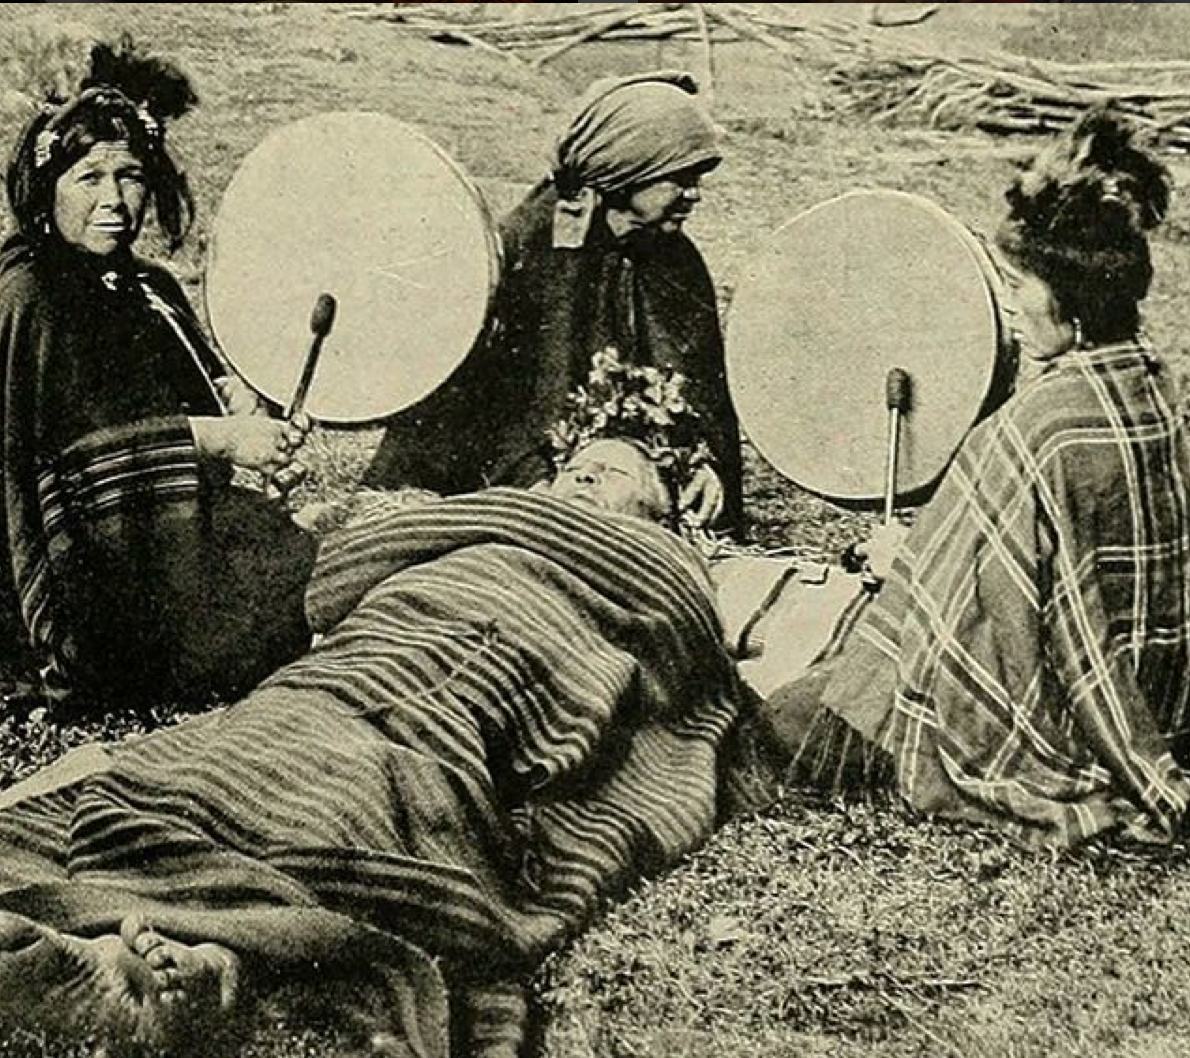 Mapuche medicine women treating a patient. Chile, 1908.